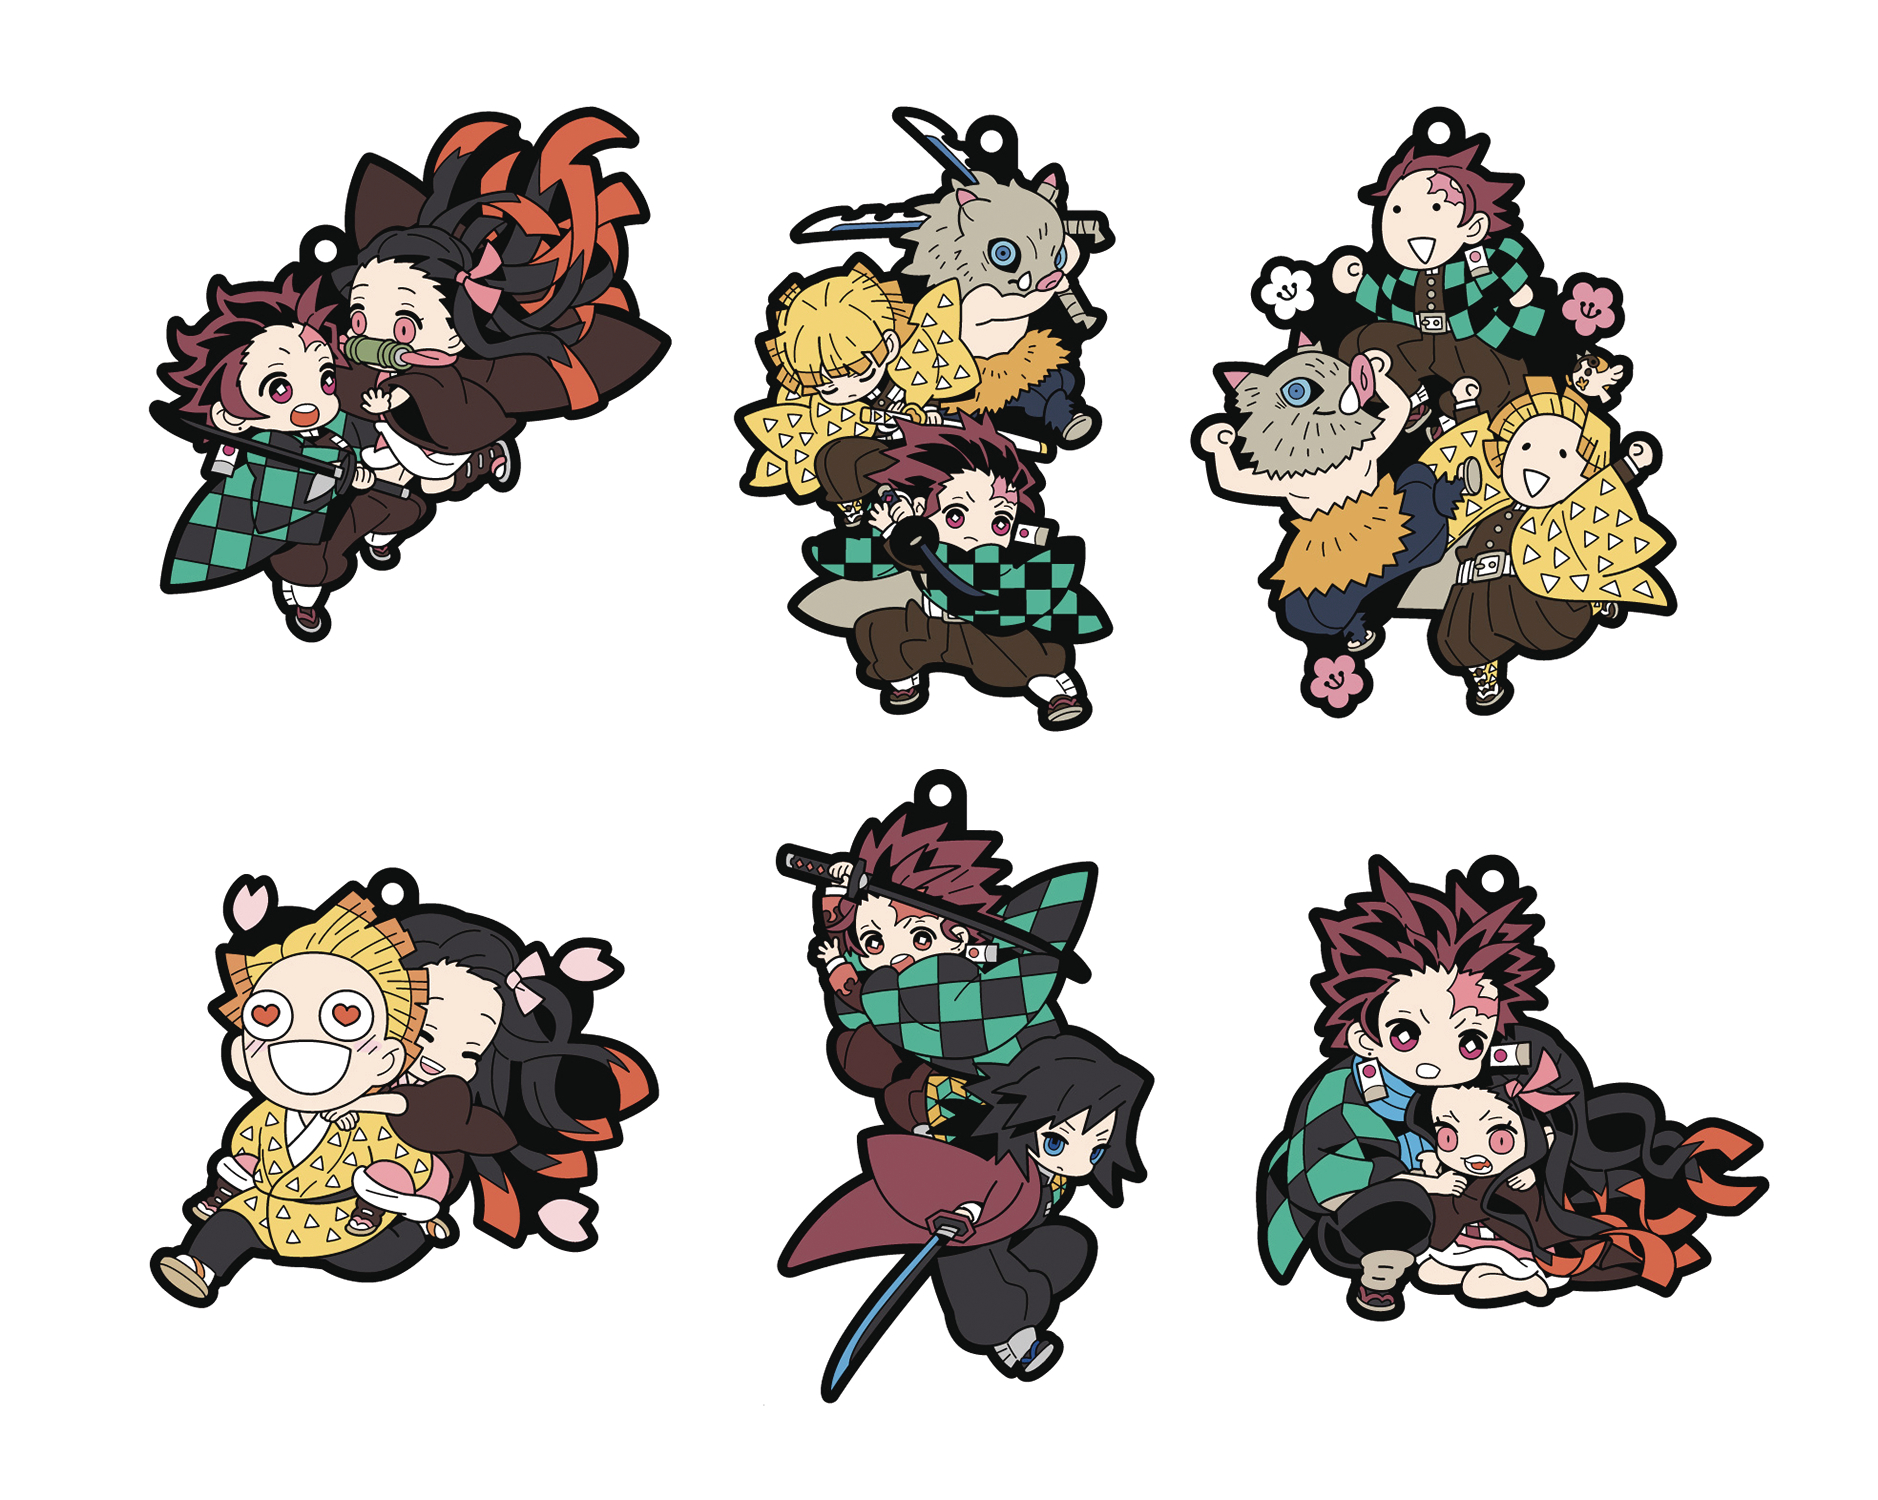 DEMON SLAYER KIMETSU NO YAIBA RUBBER MASCOT 6PC DS